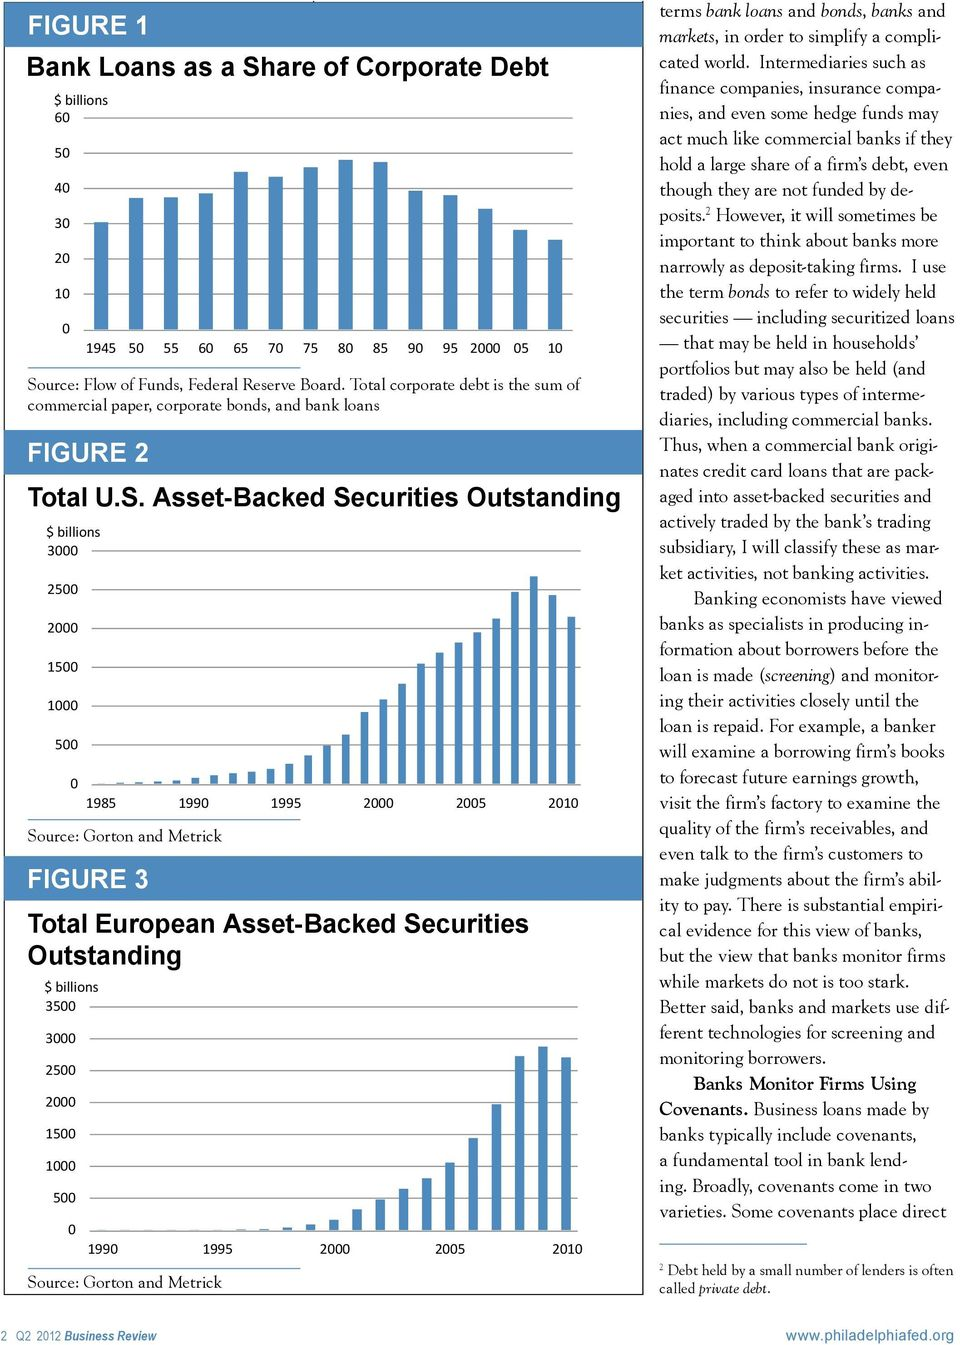 Asset-Backed Securities Outstanding $ billions 3000 2500 2000 1500 1000 500 0 1985 1990 1995 2000 2005 2010 Source: Gorton and Metrick FIGURE 3 Total European Asset-Backed Securities Outstanding $